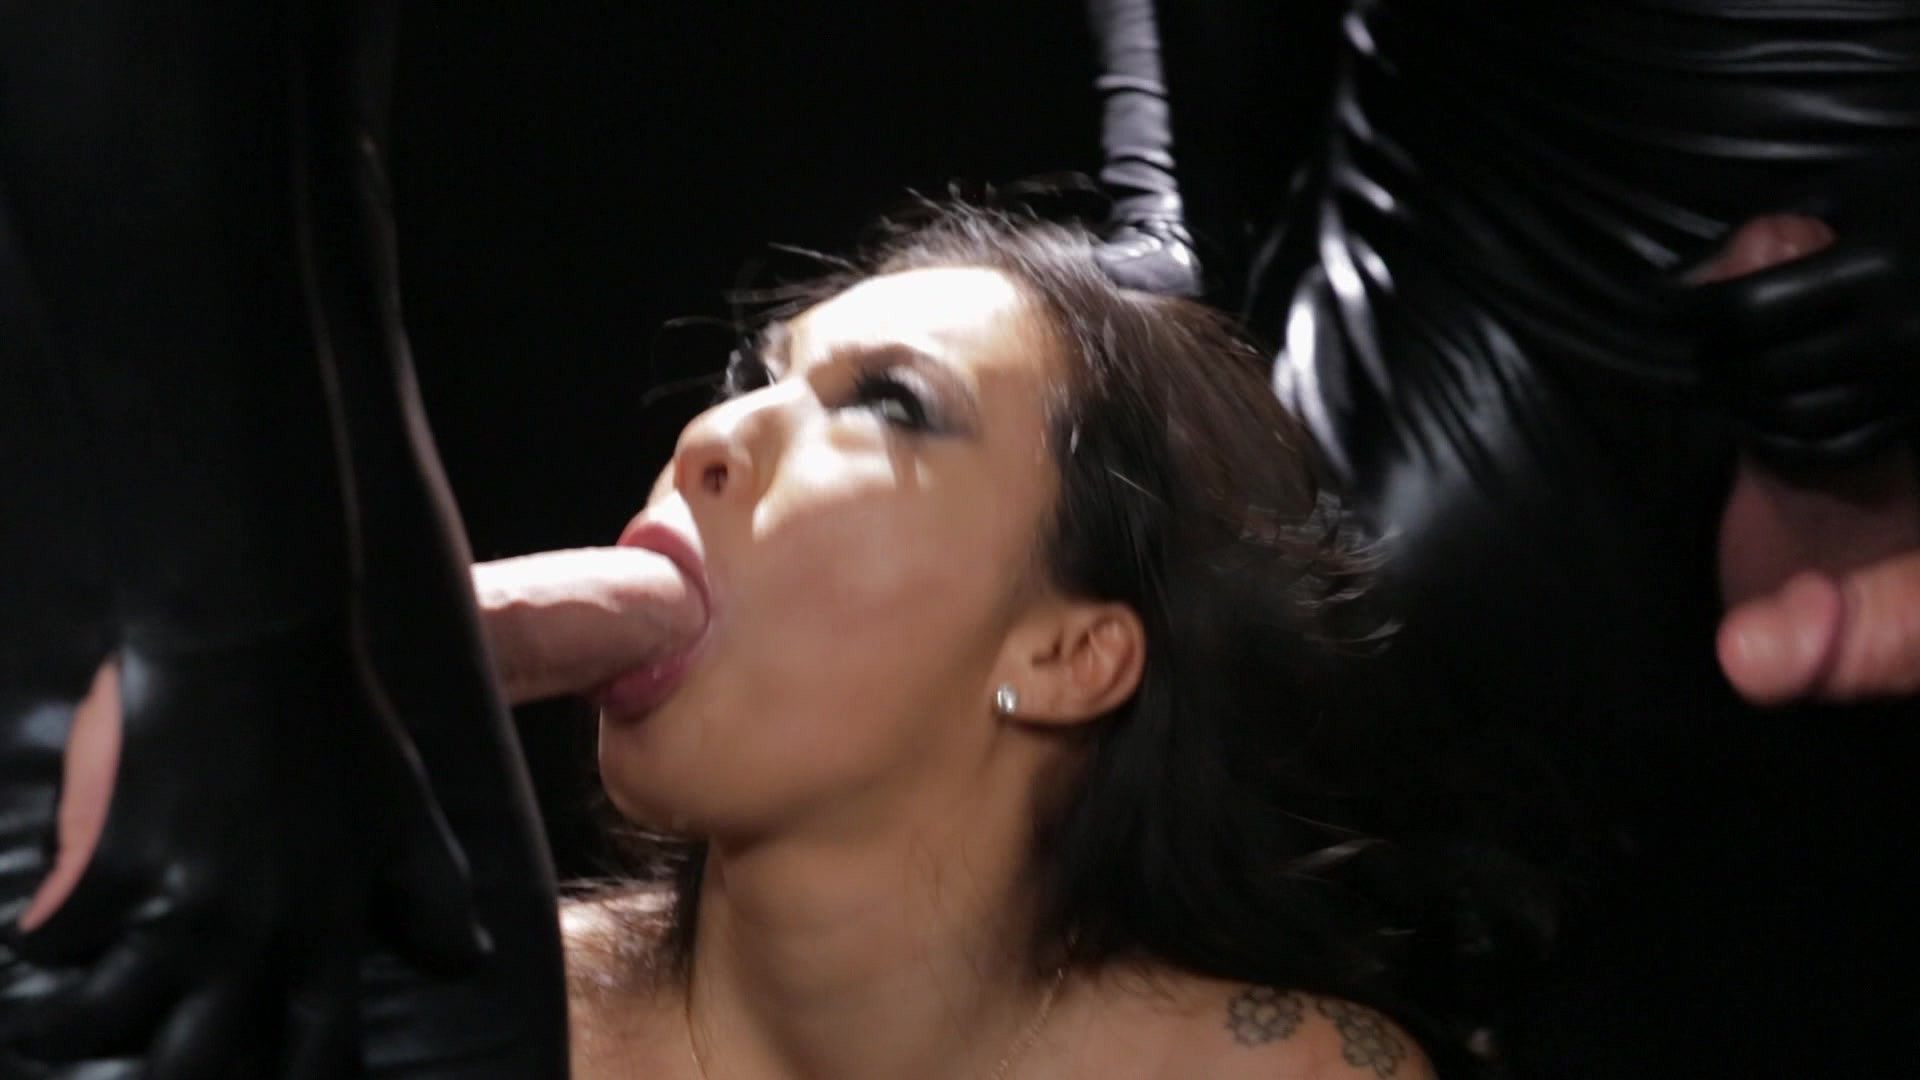 Scene with Asa Akira - image 13 out of 20